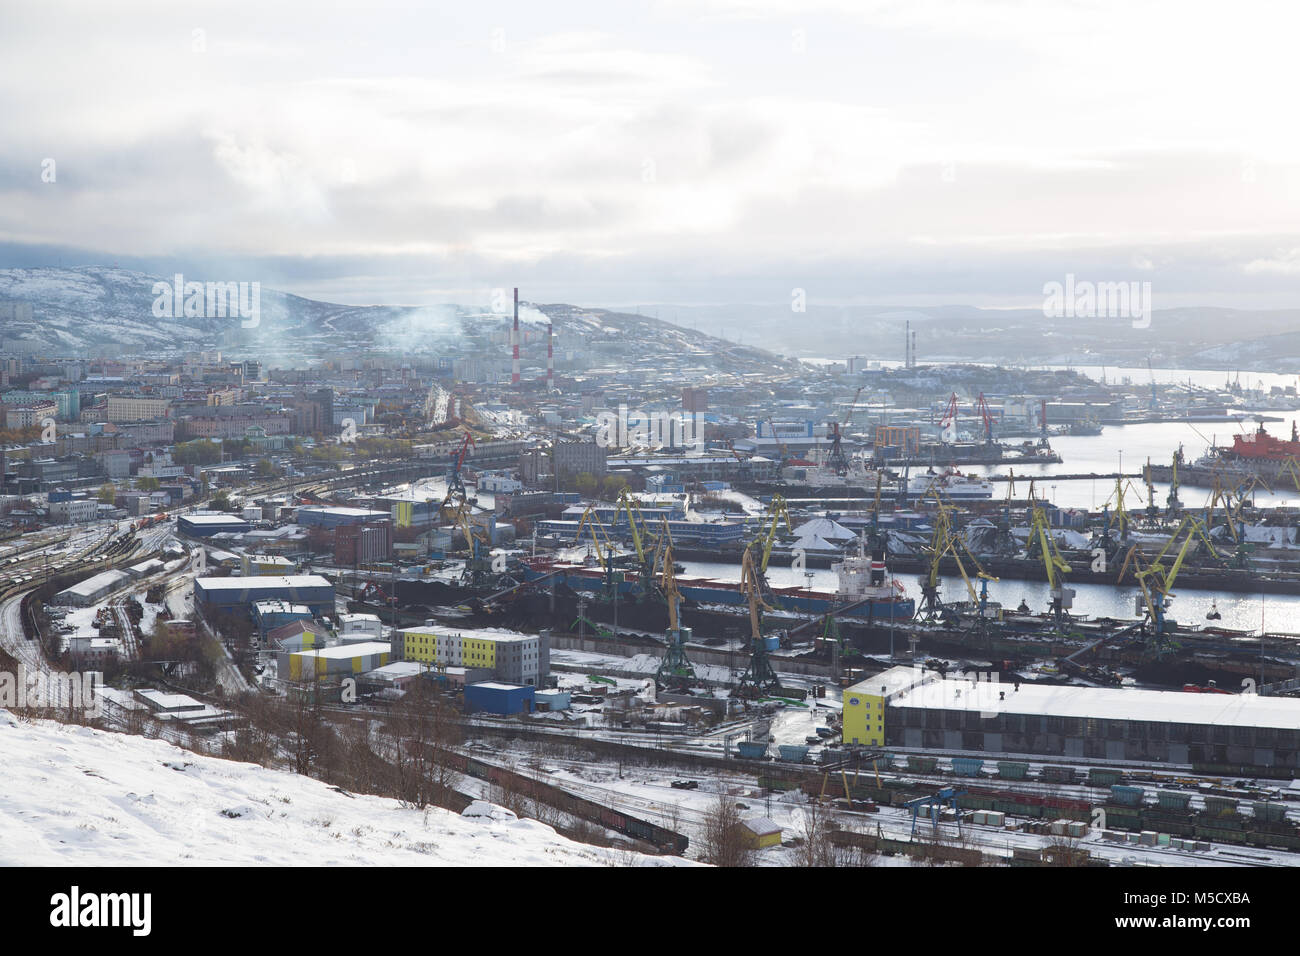 Murmansk, Russia - October 20th, 2017: Murmansk, view on a city and sea moorings with top. - Stock Image